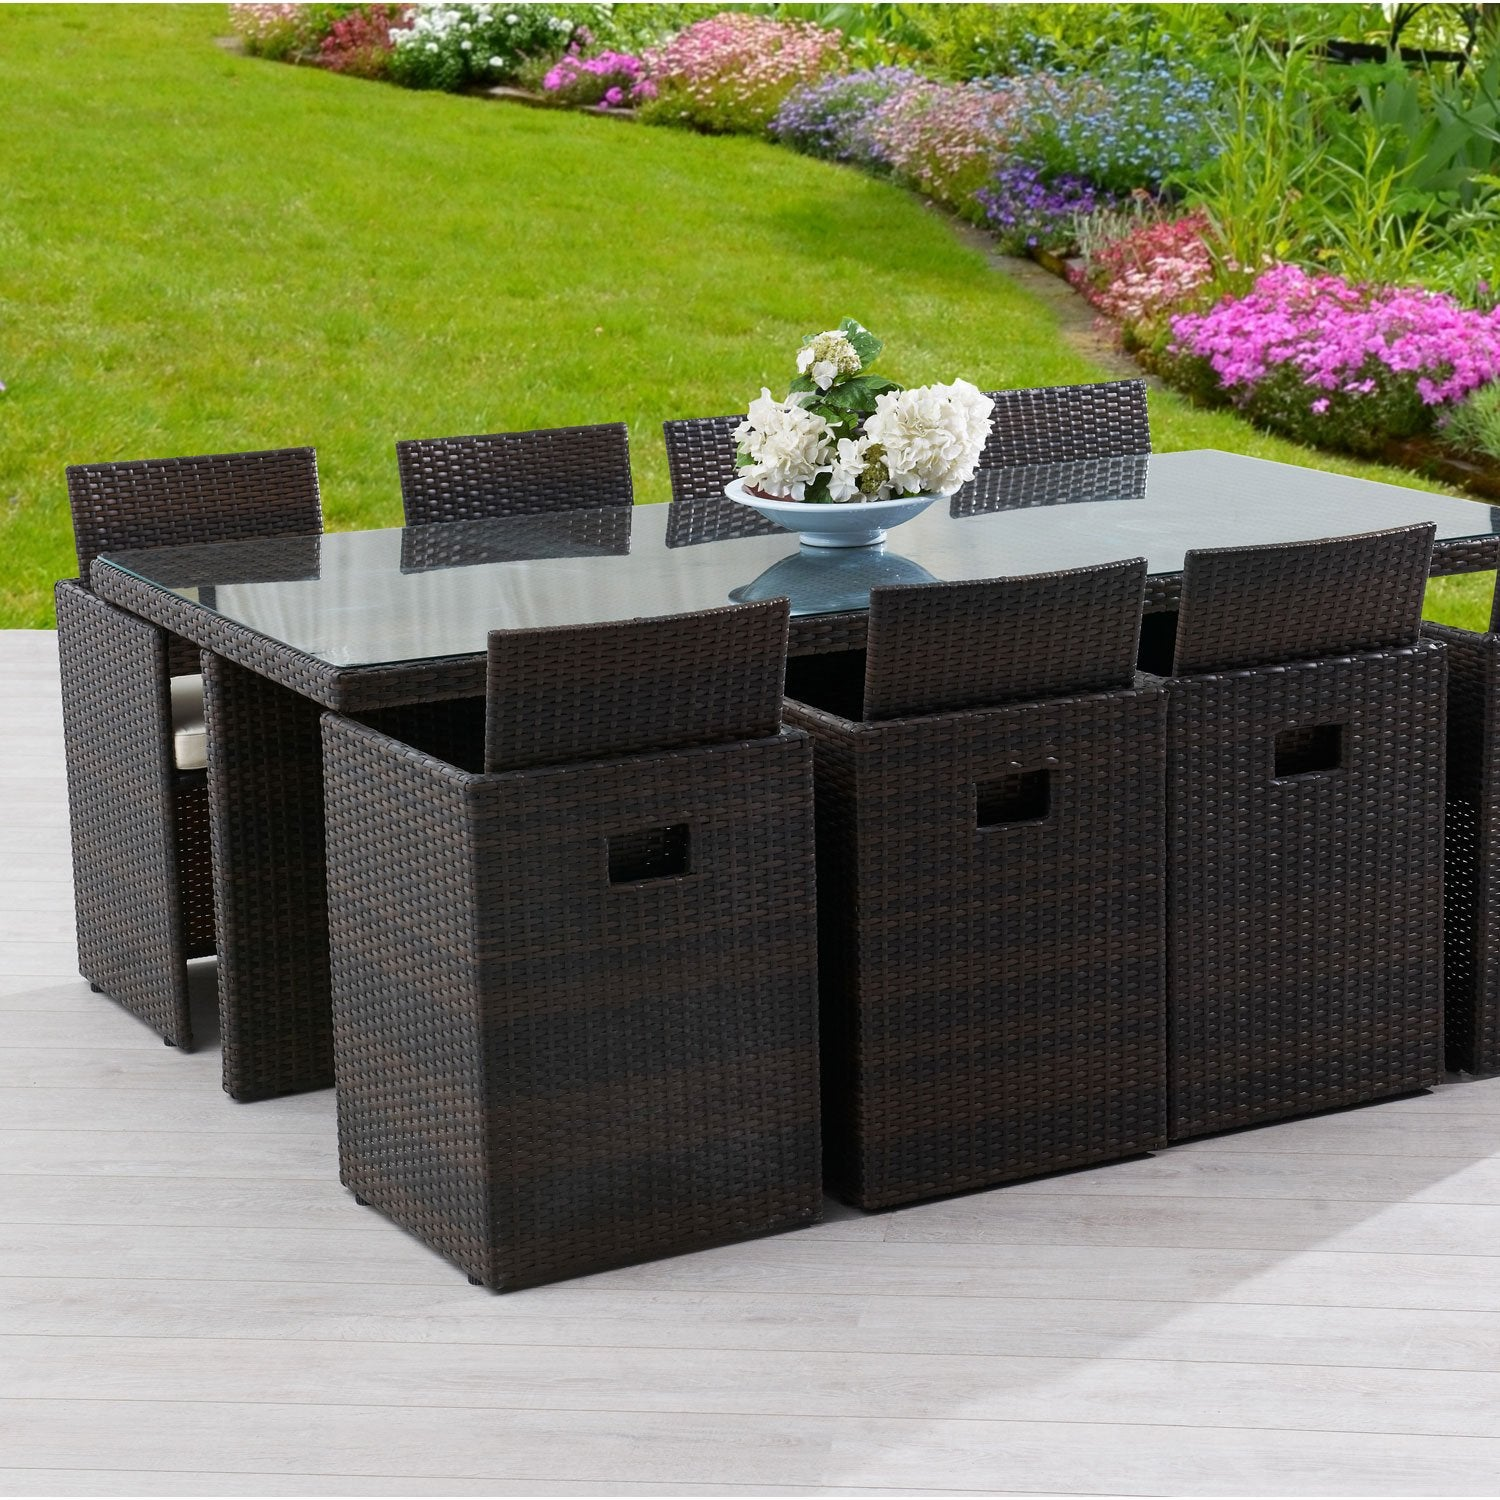 Salon de jardin encastrable r sine tress e marron 1 table - Salon de jardin ibiza ...